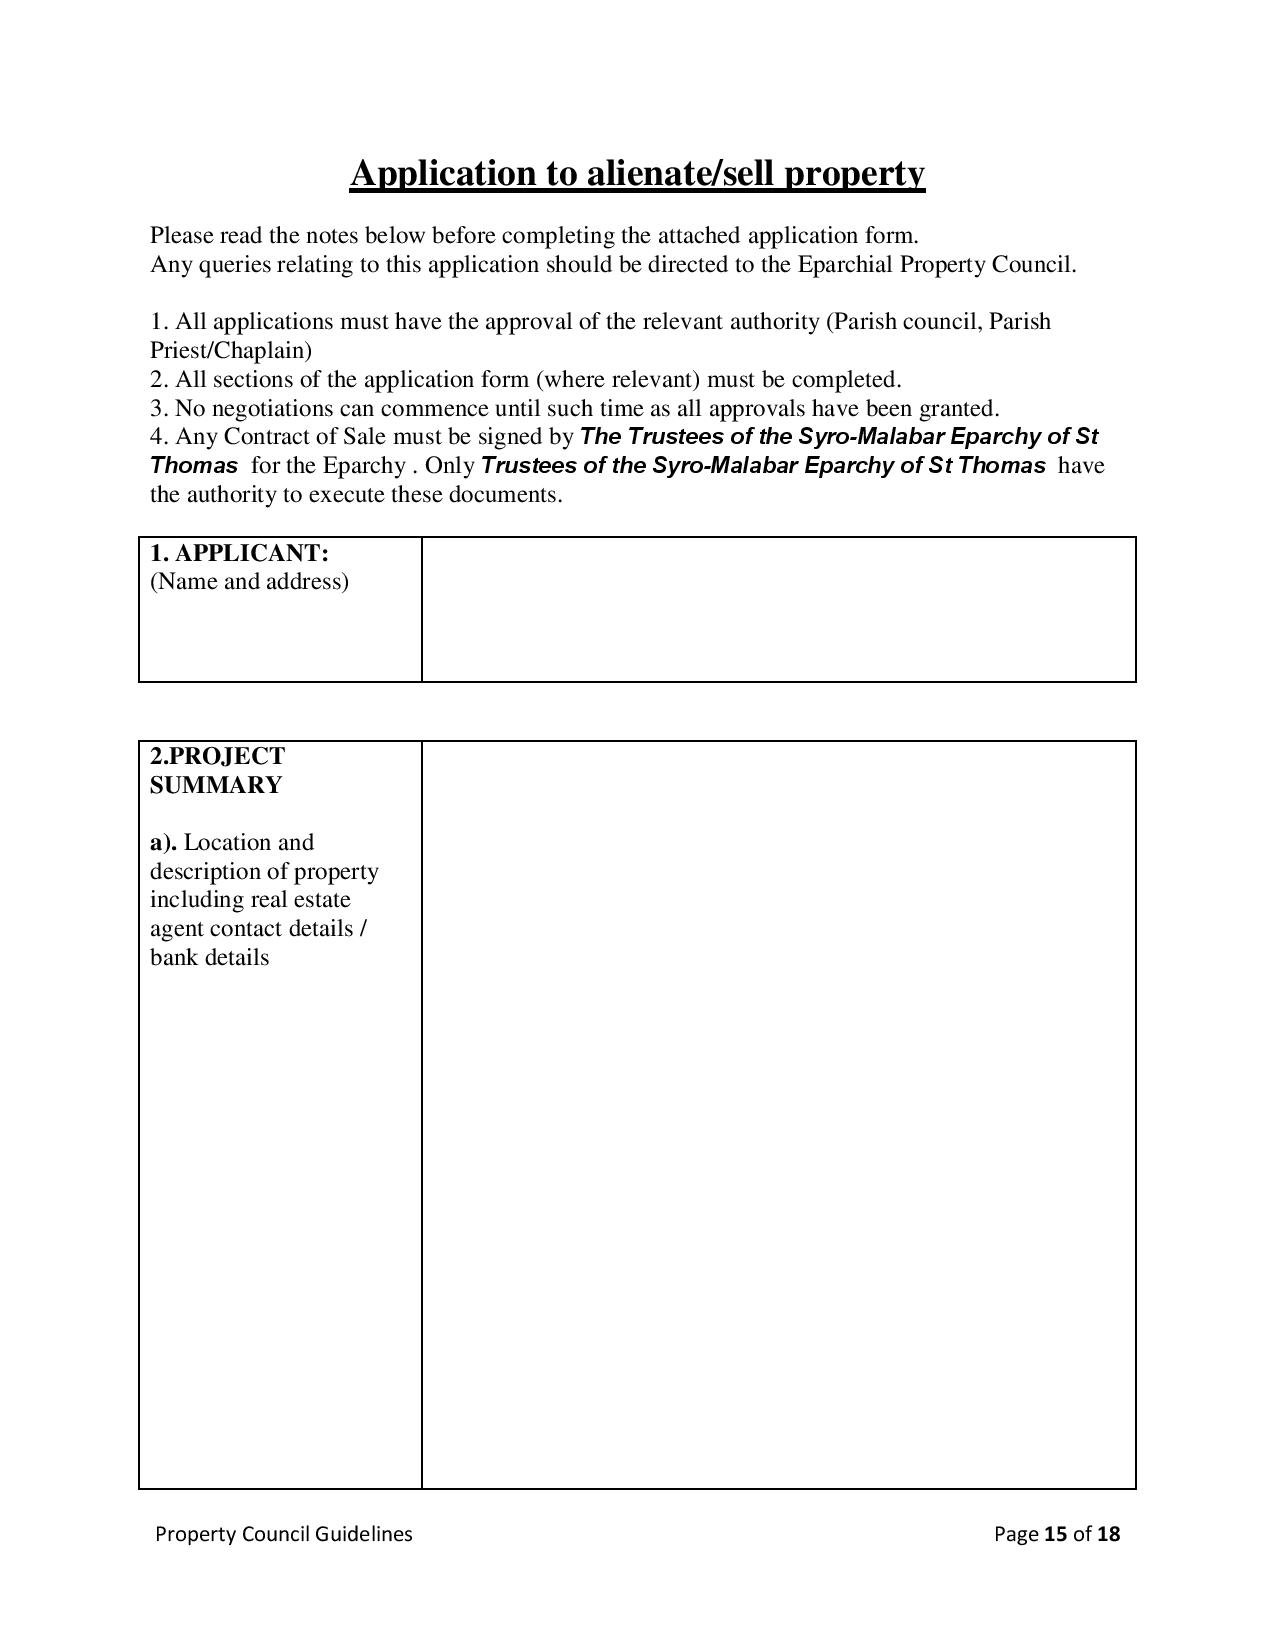 property-council-guidlines-v2-4-page-015